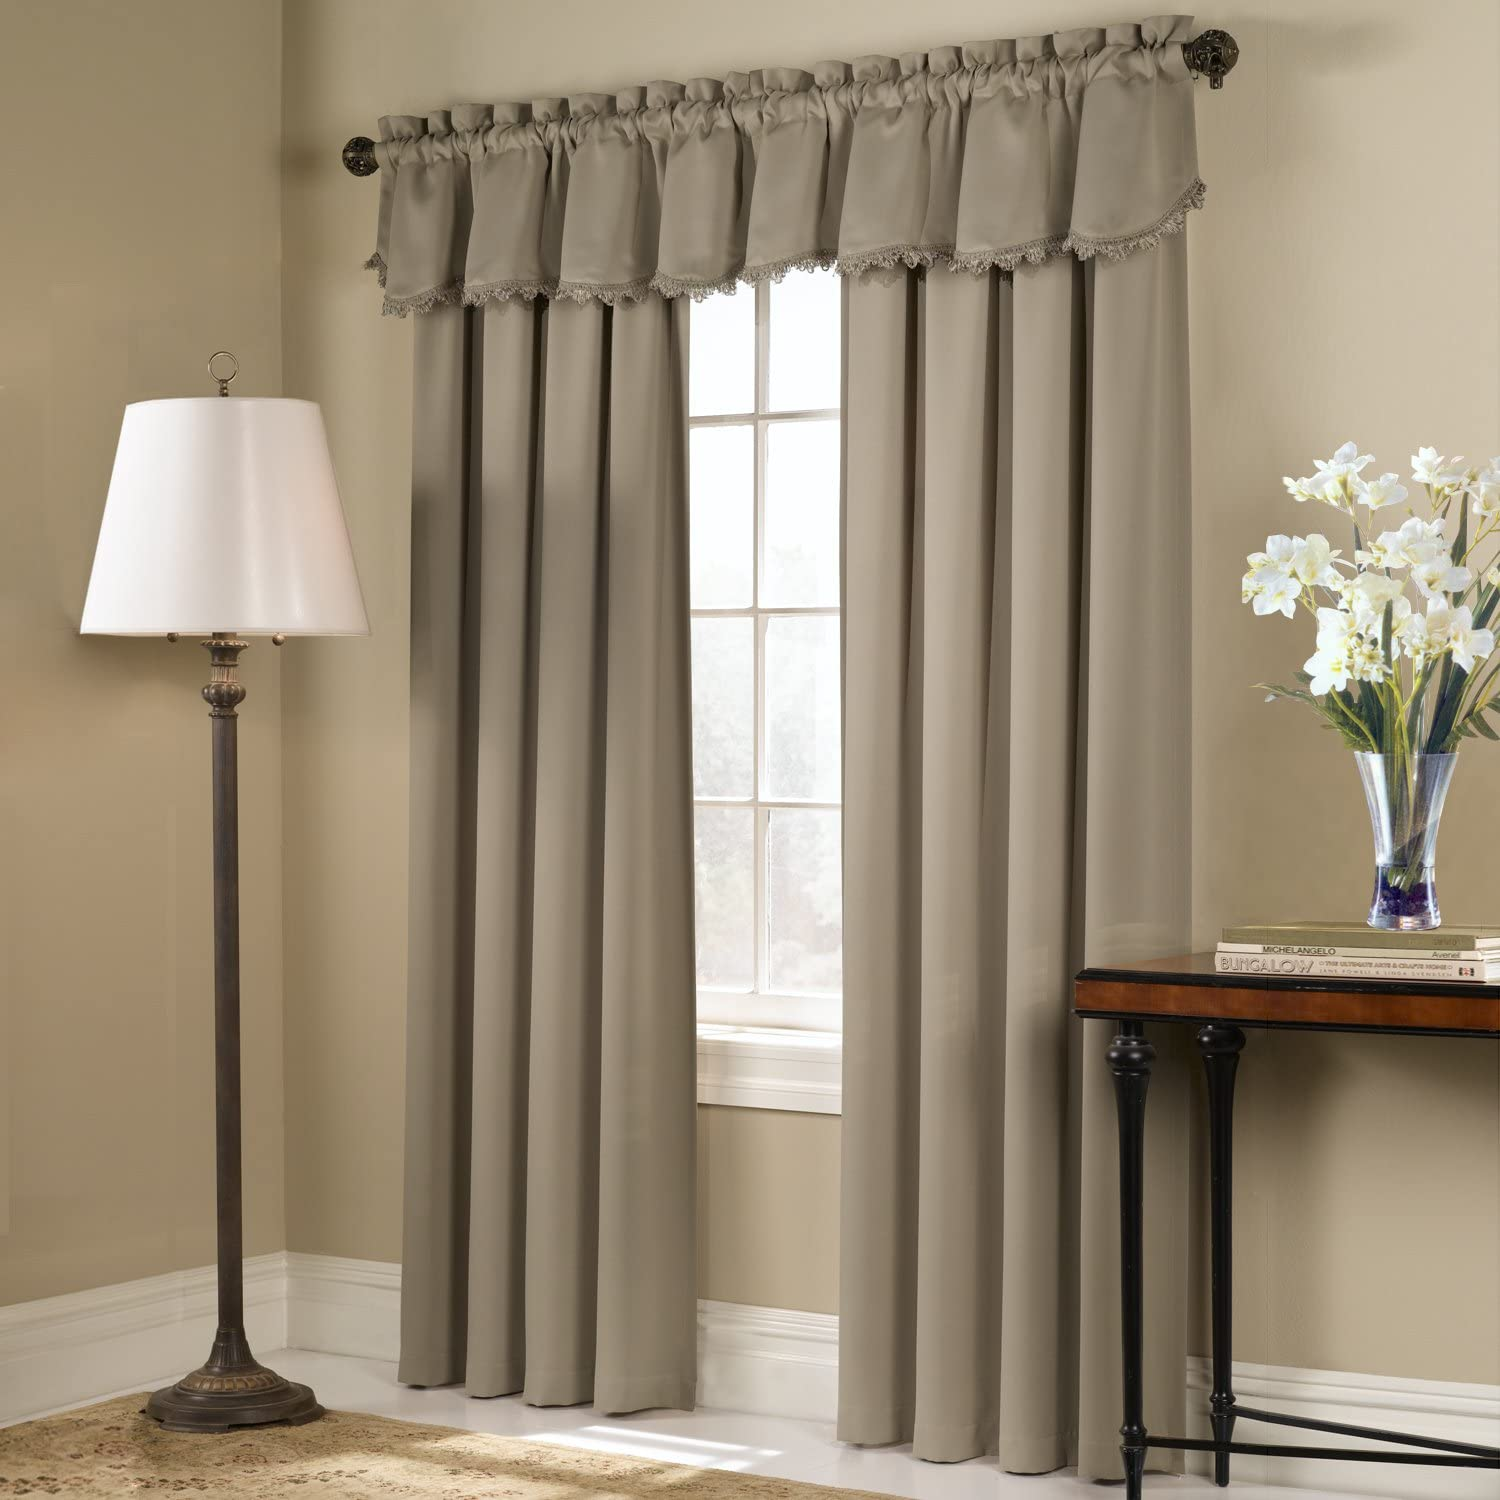 54 by 45-Inch United Curtain Blackstone Blackout Window Curtain Panel Blue